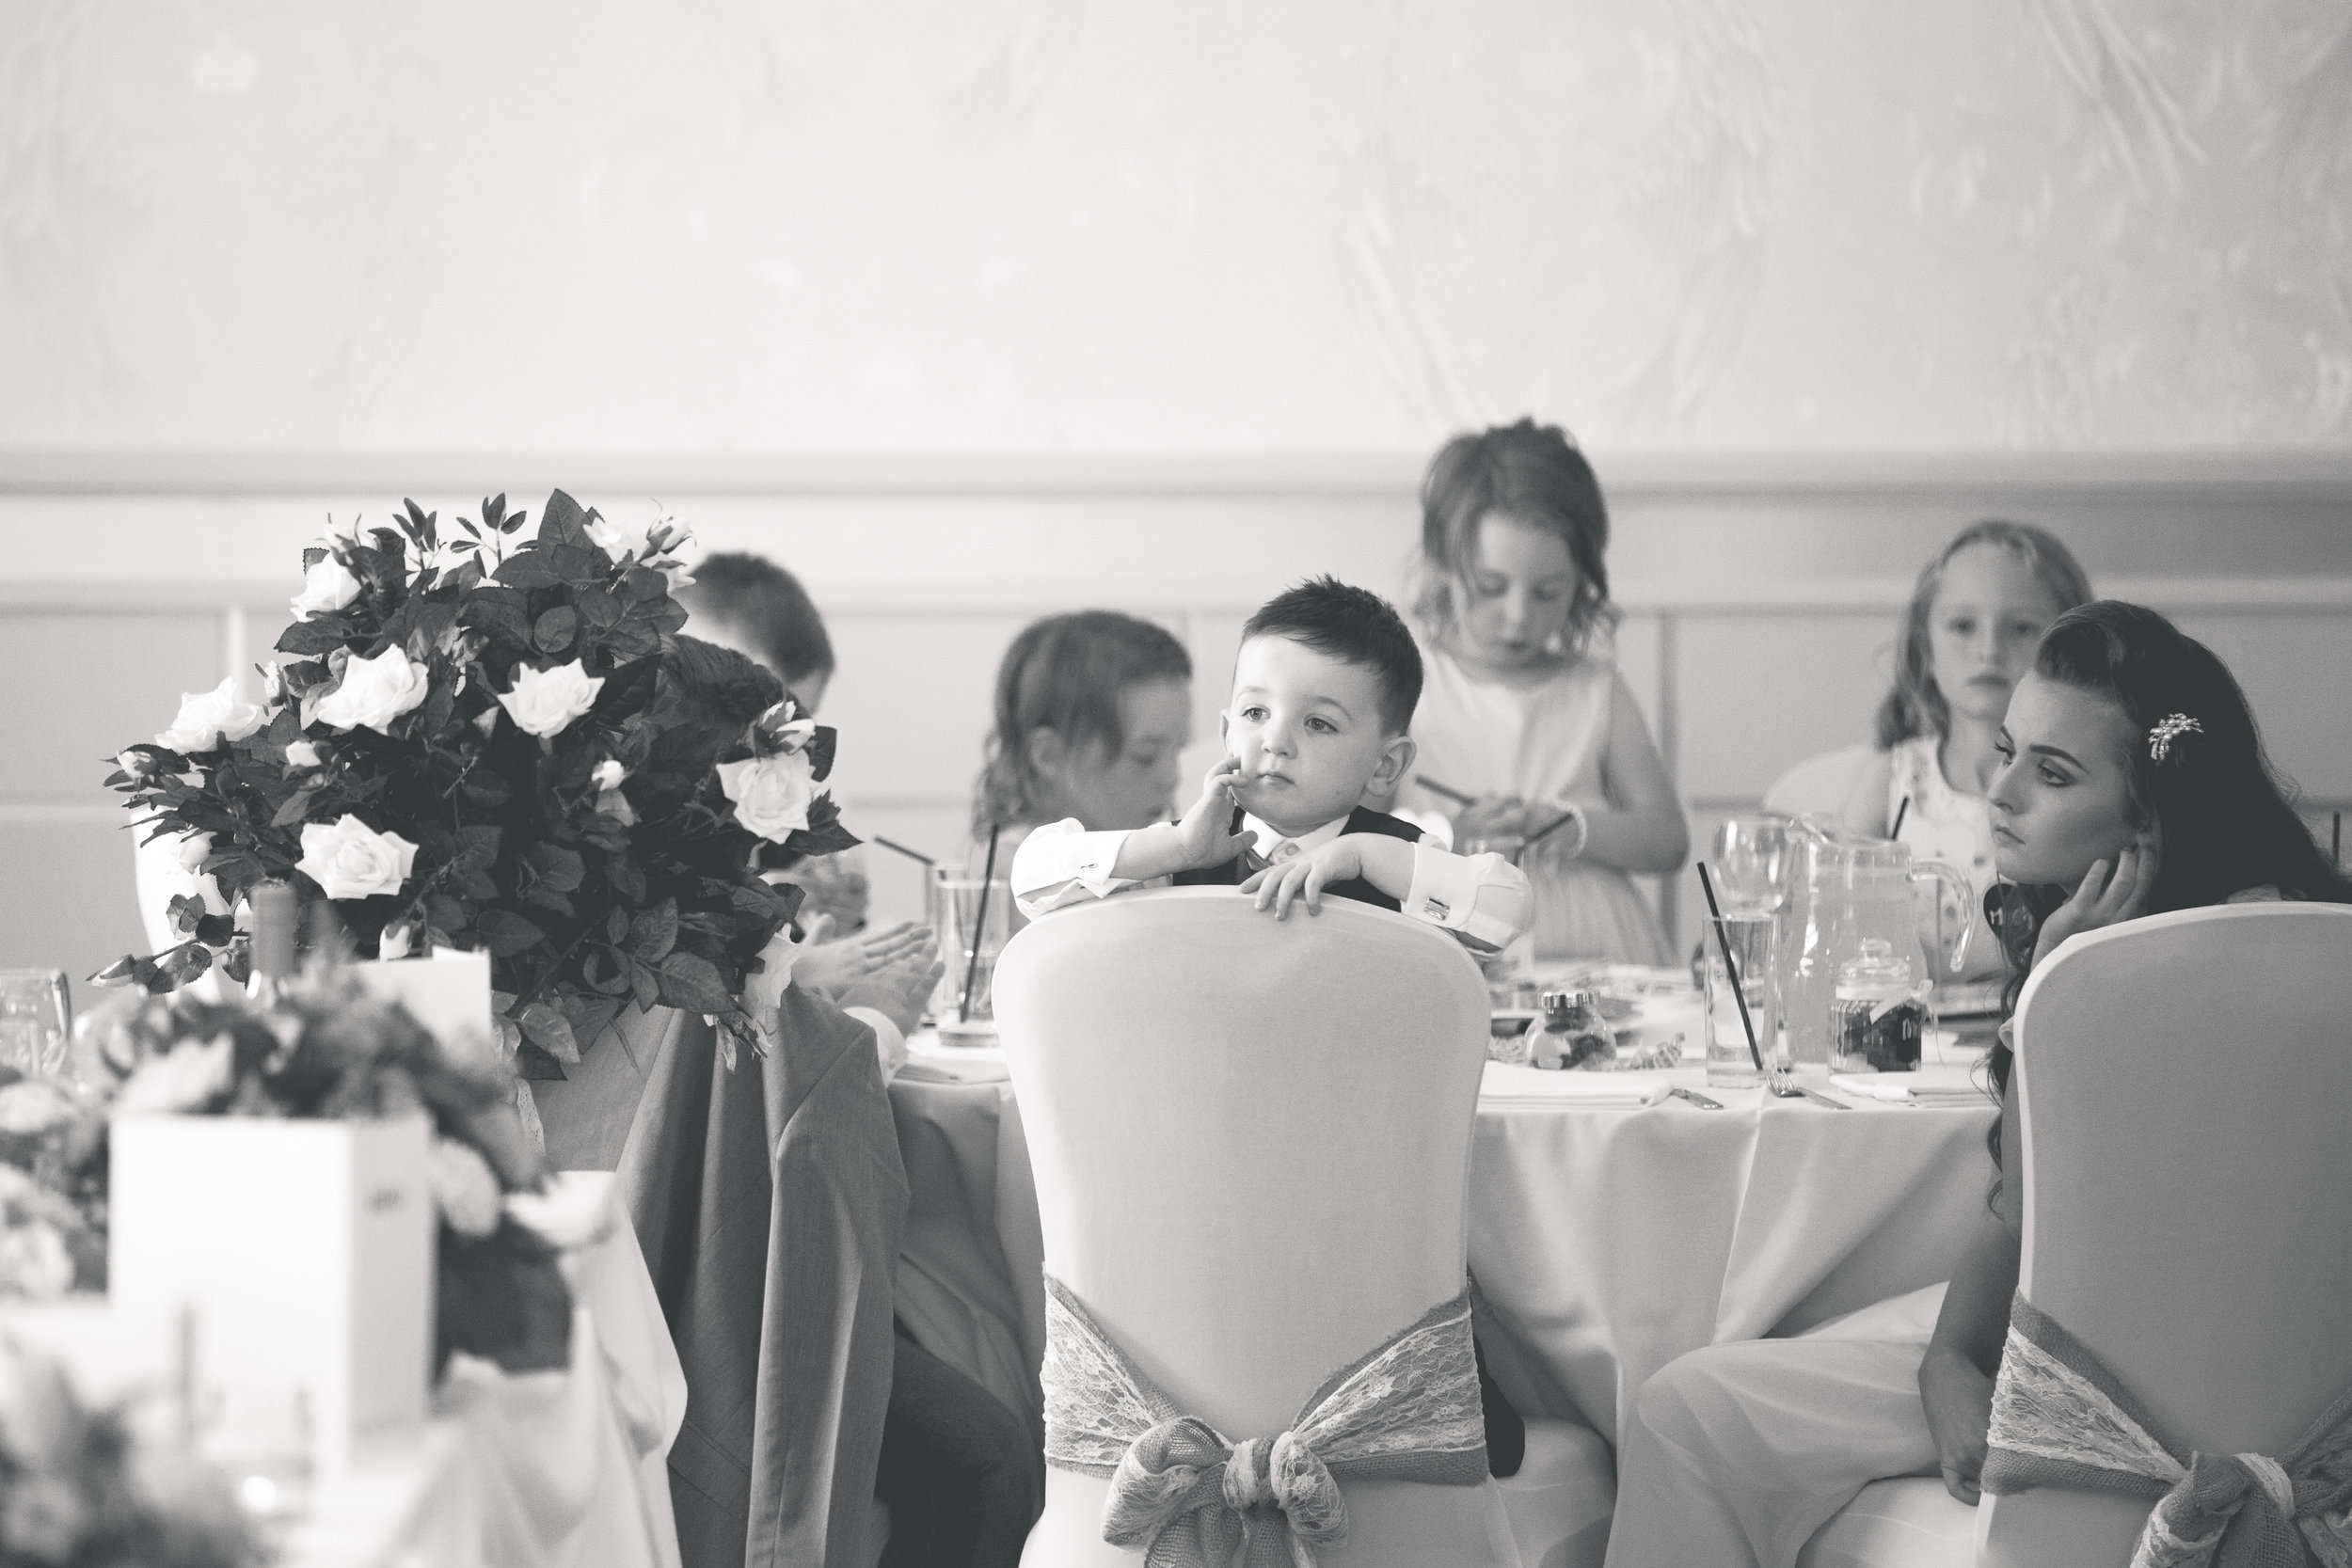 Antoinette & Stephen - Speeches | Brian McEwan Photography | Wedding Photographer Northern Ireland 33.jpg